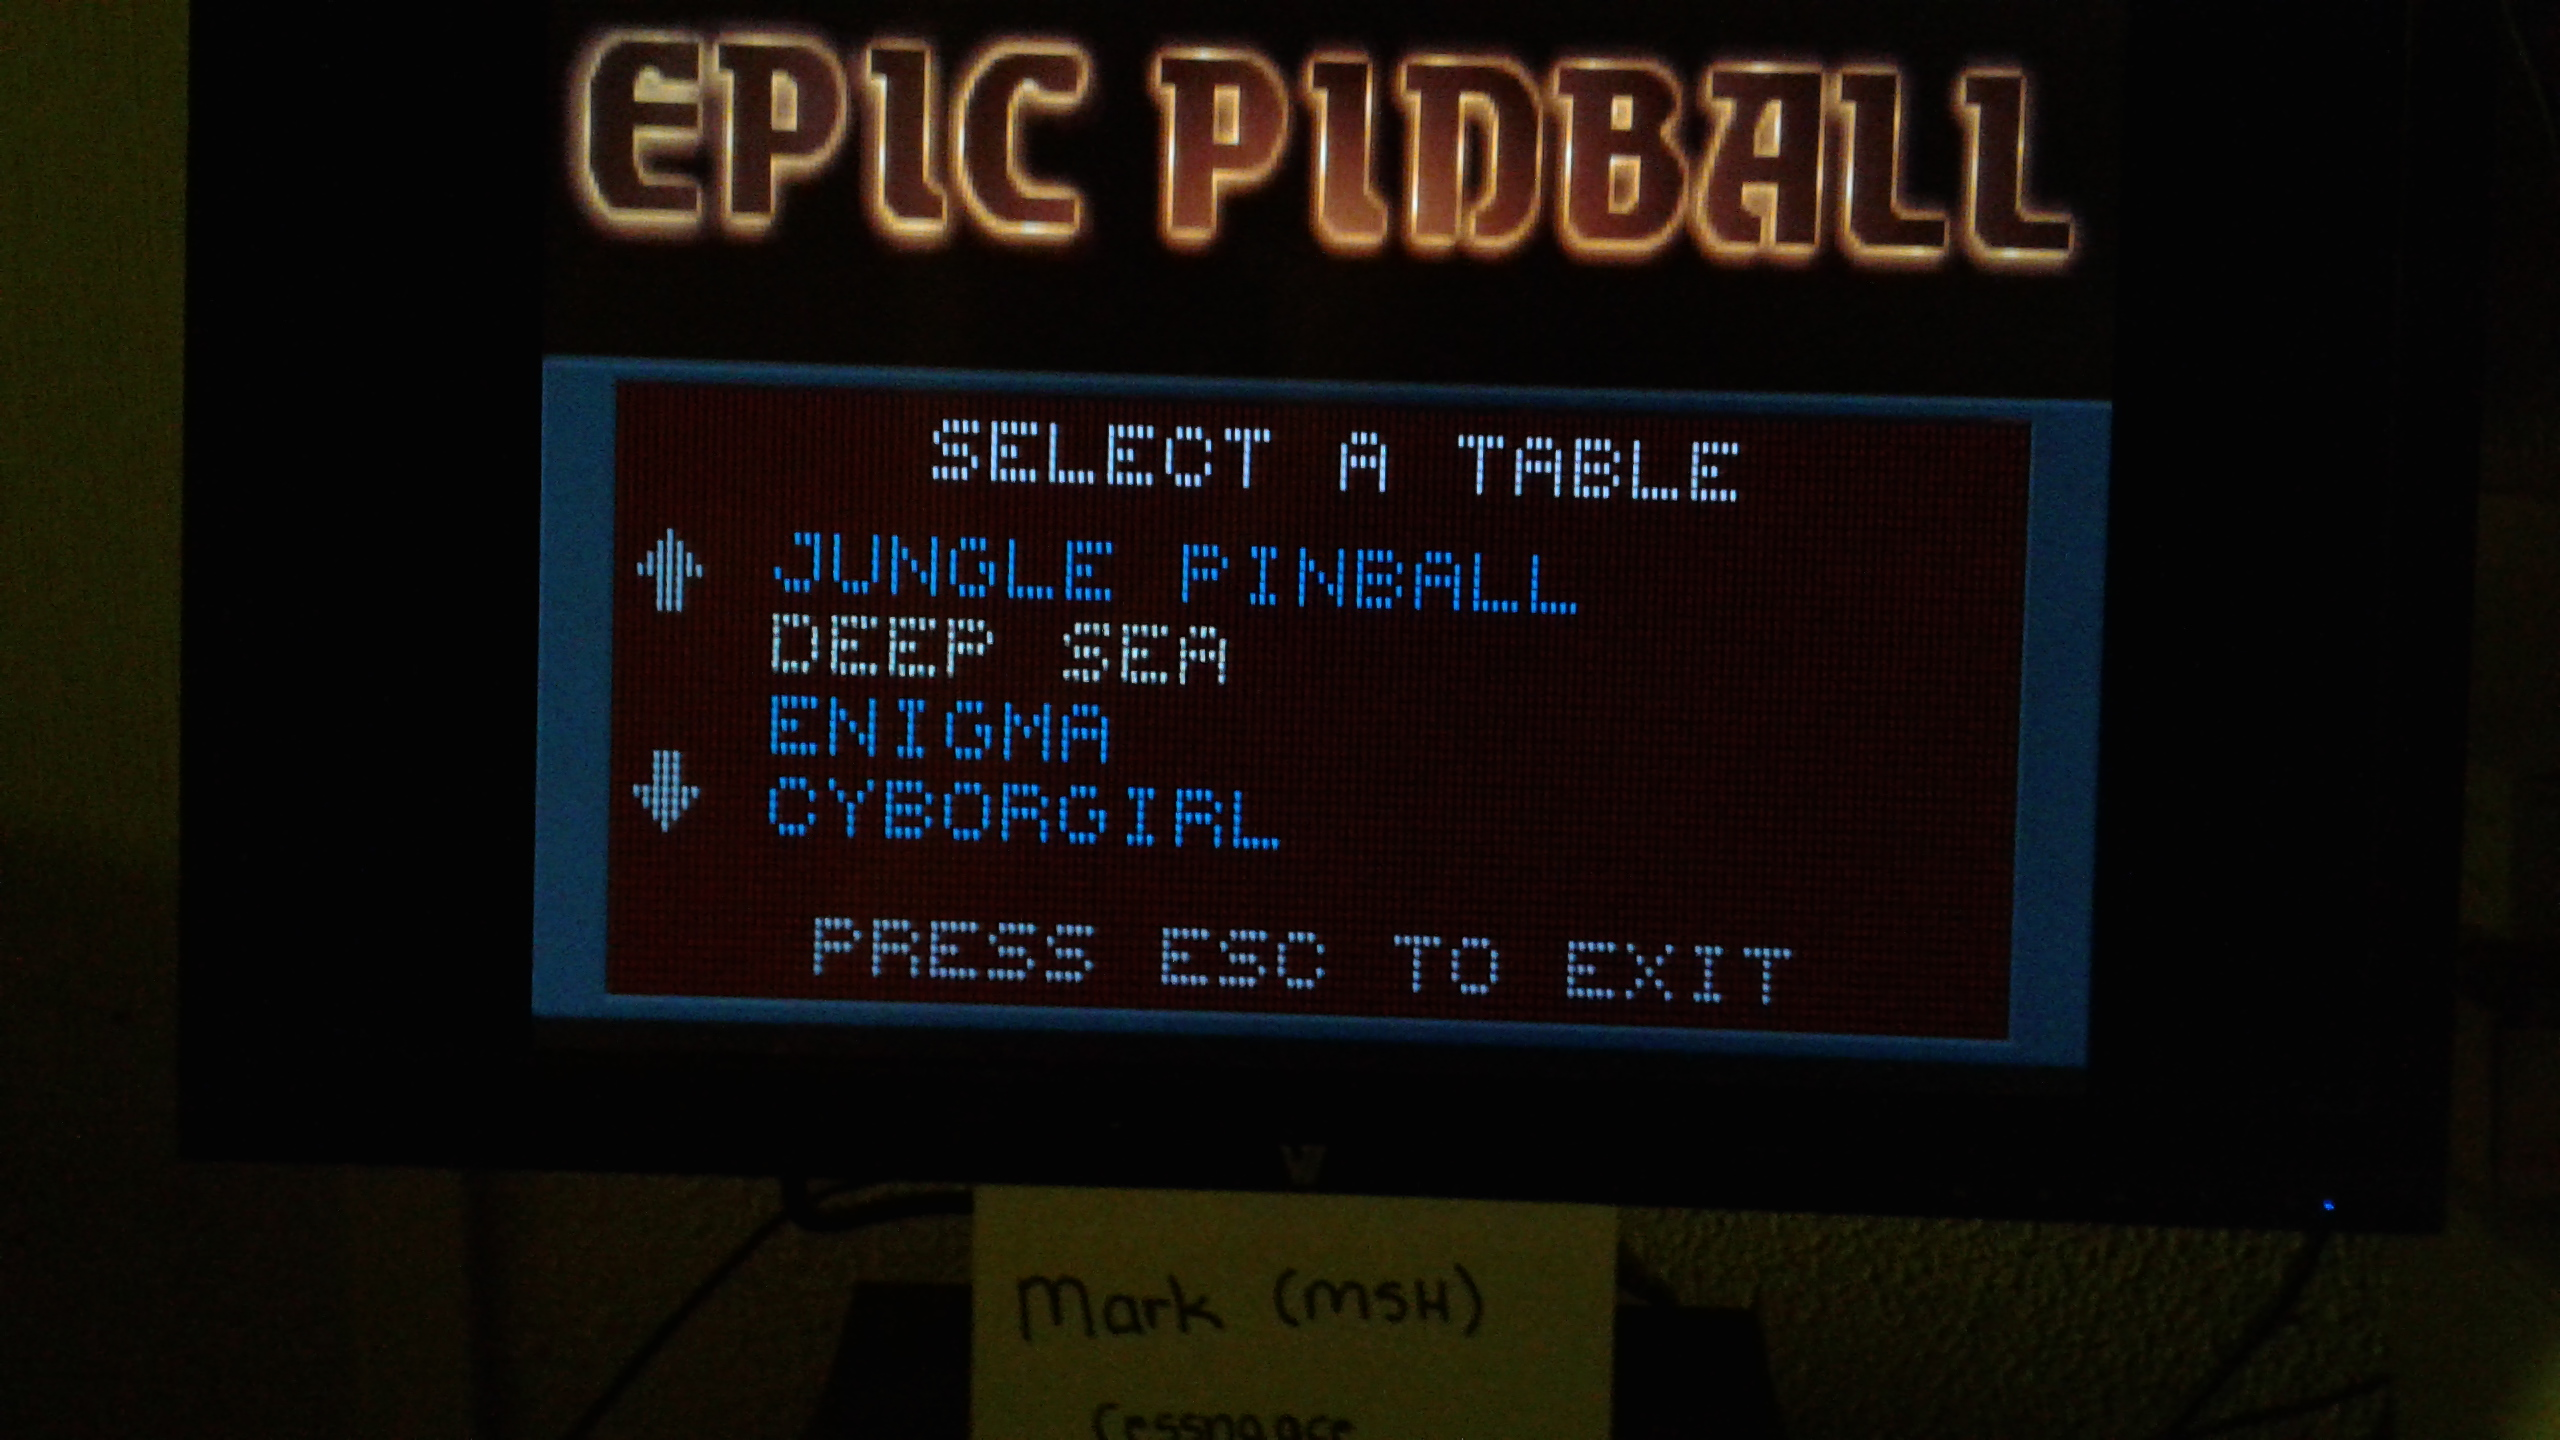 Mark: Epic Pinball: Deep Sea (PC Emulated / DOSBox) 166,772,205 points on 2019-05-13 01:57:48